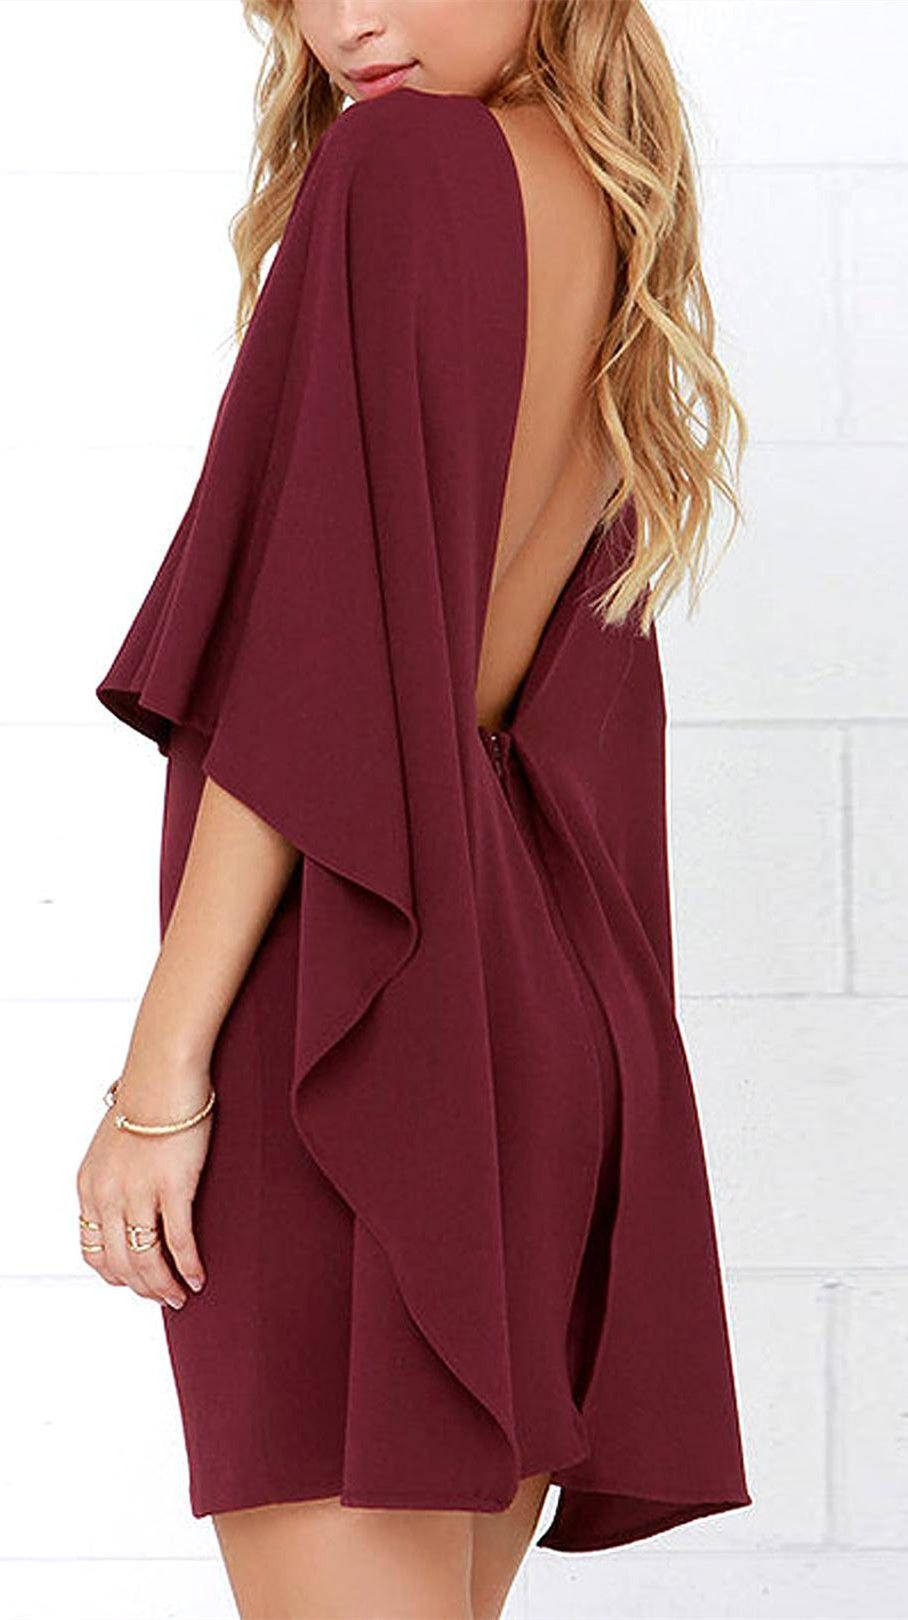 Cape Backless Dress in Burgundy | Closet I wish for! | Pinterest